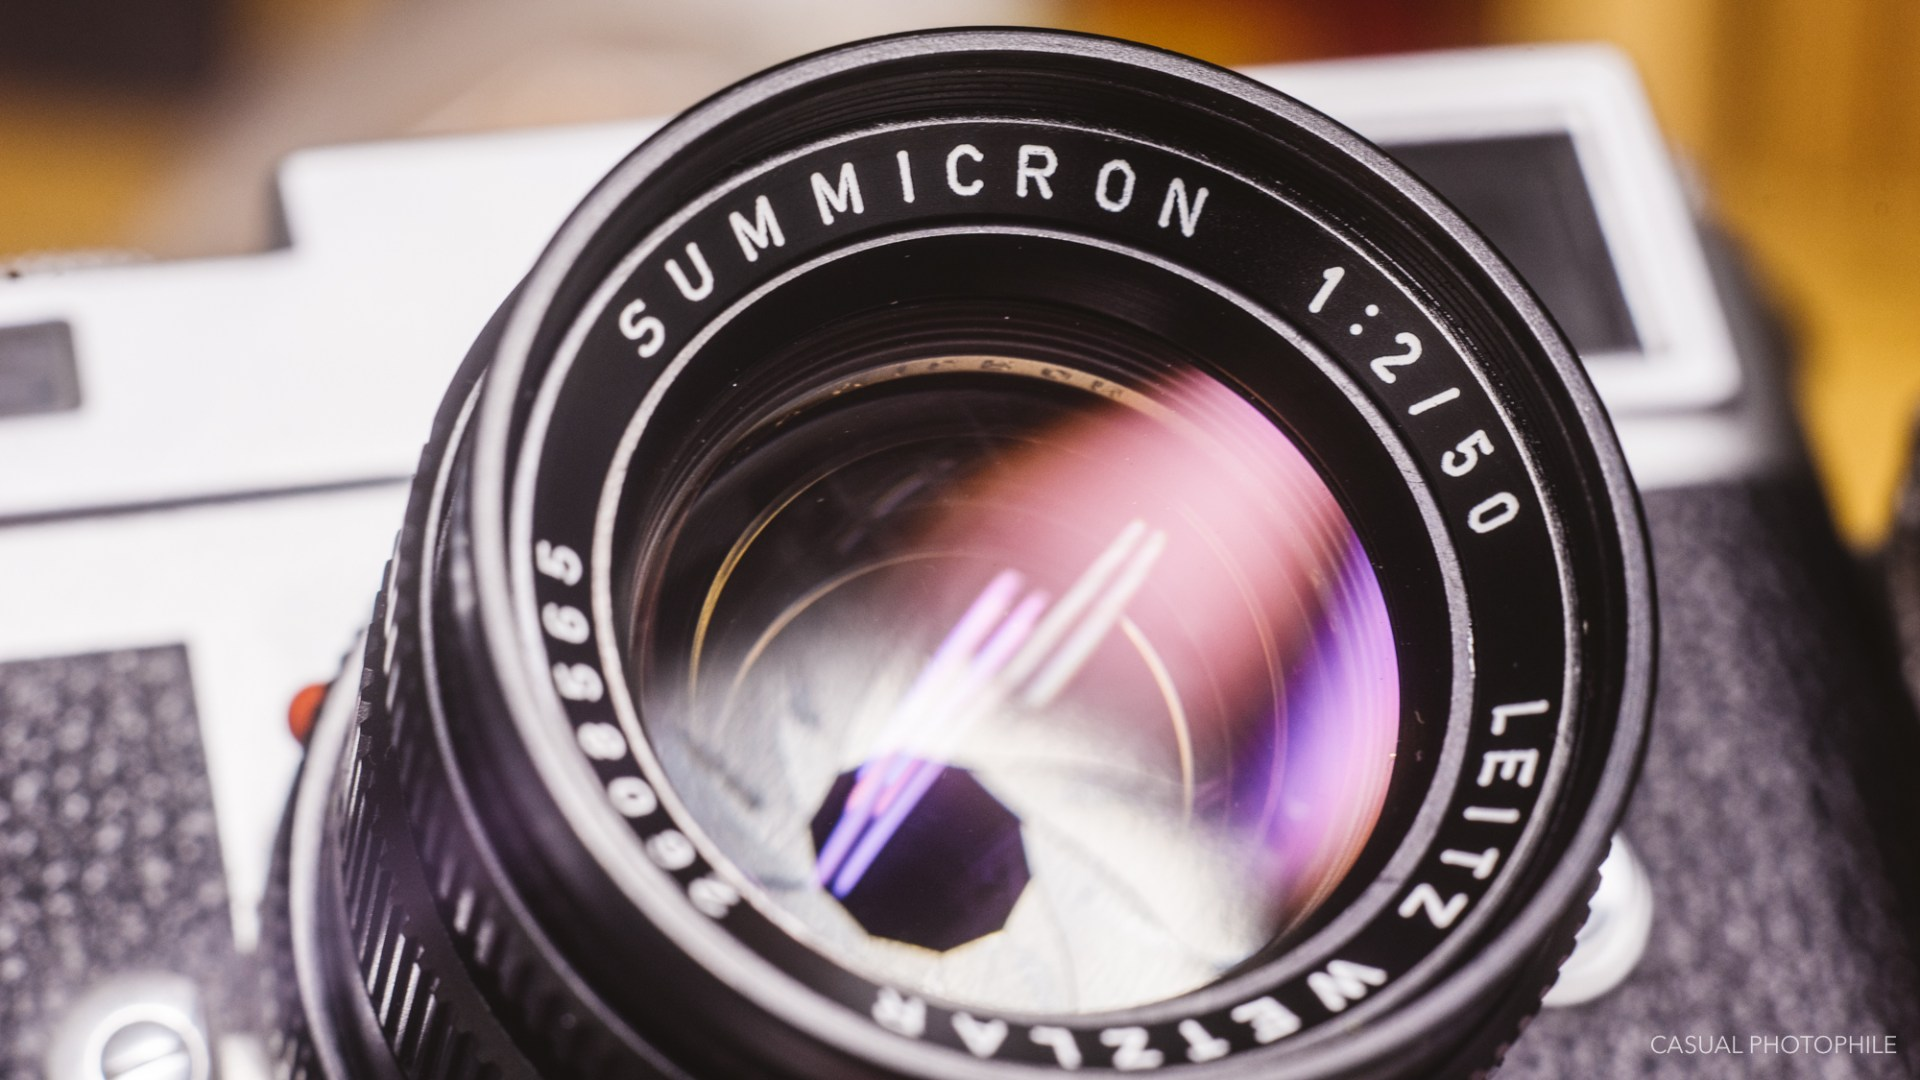 Leica's Worst Summicron 50mm F/2 is one of the Best (and